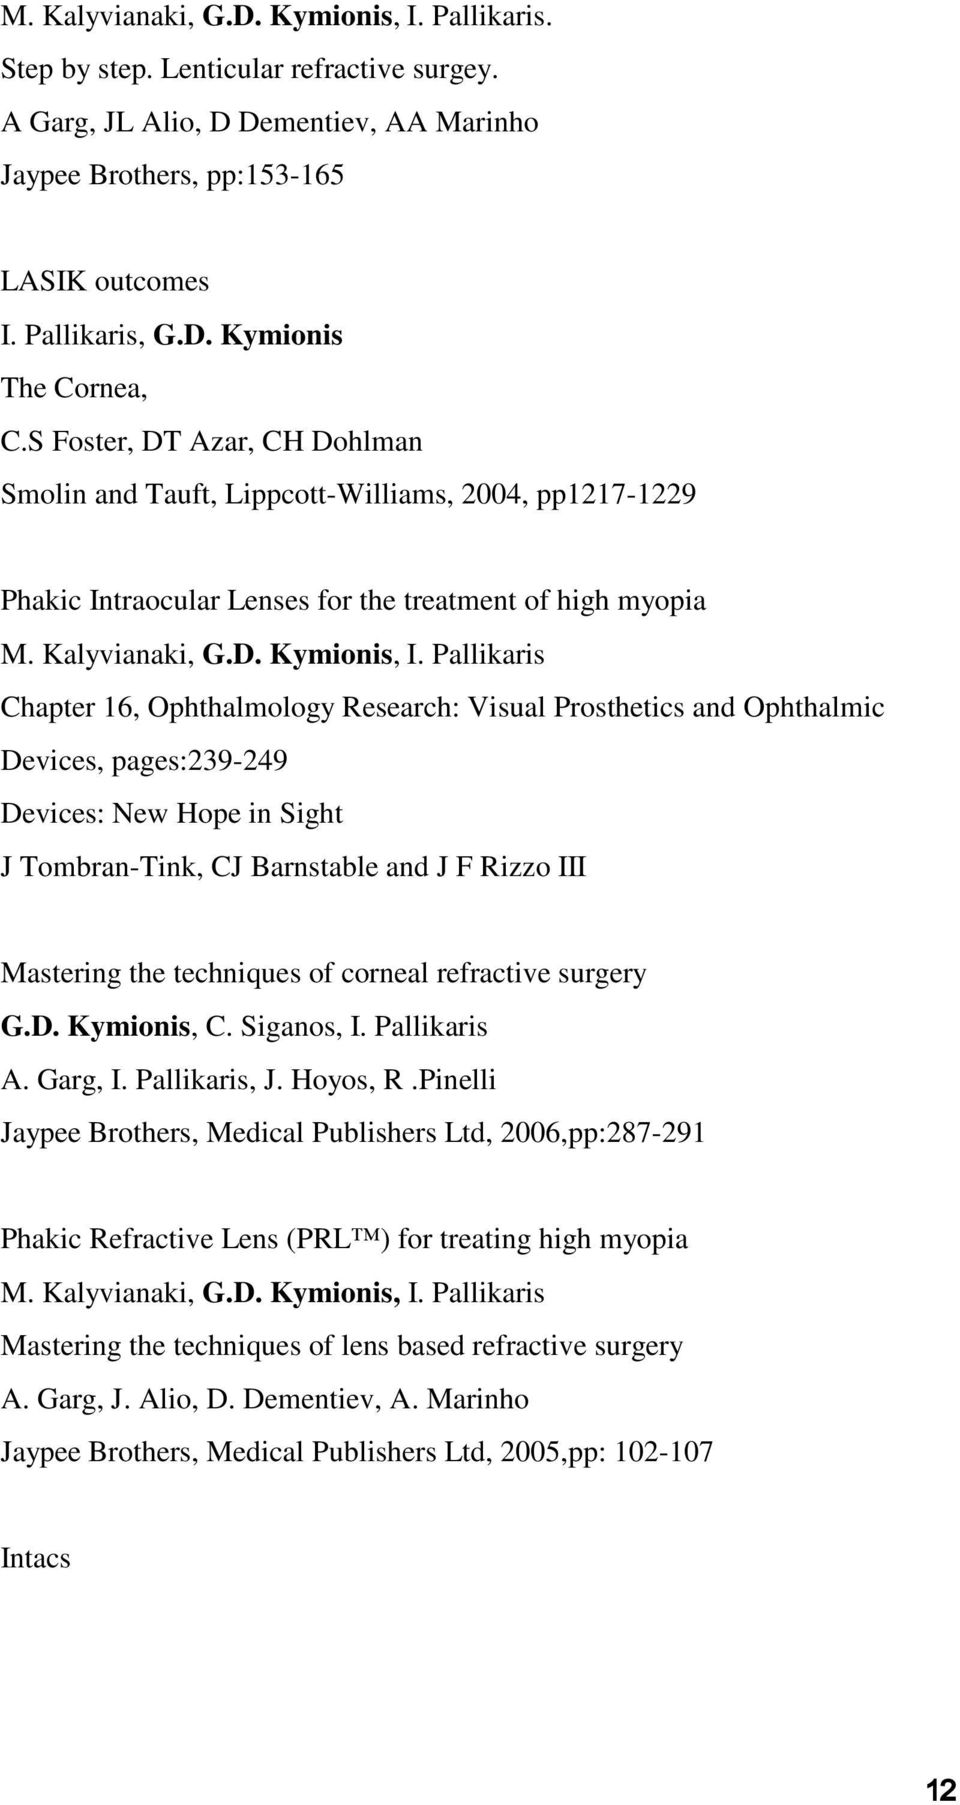 Pallikaris Chapter 16, Ophthalmology Research: Visual Prosthetics and Ophthalmic Devices, pages:239-249 Devices: New Hope in Sight J Tombran-Tink, CJ Barnstable and J F Rizzo III Mastering the